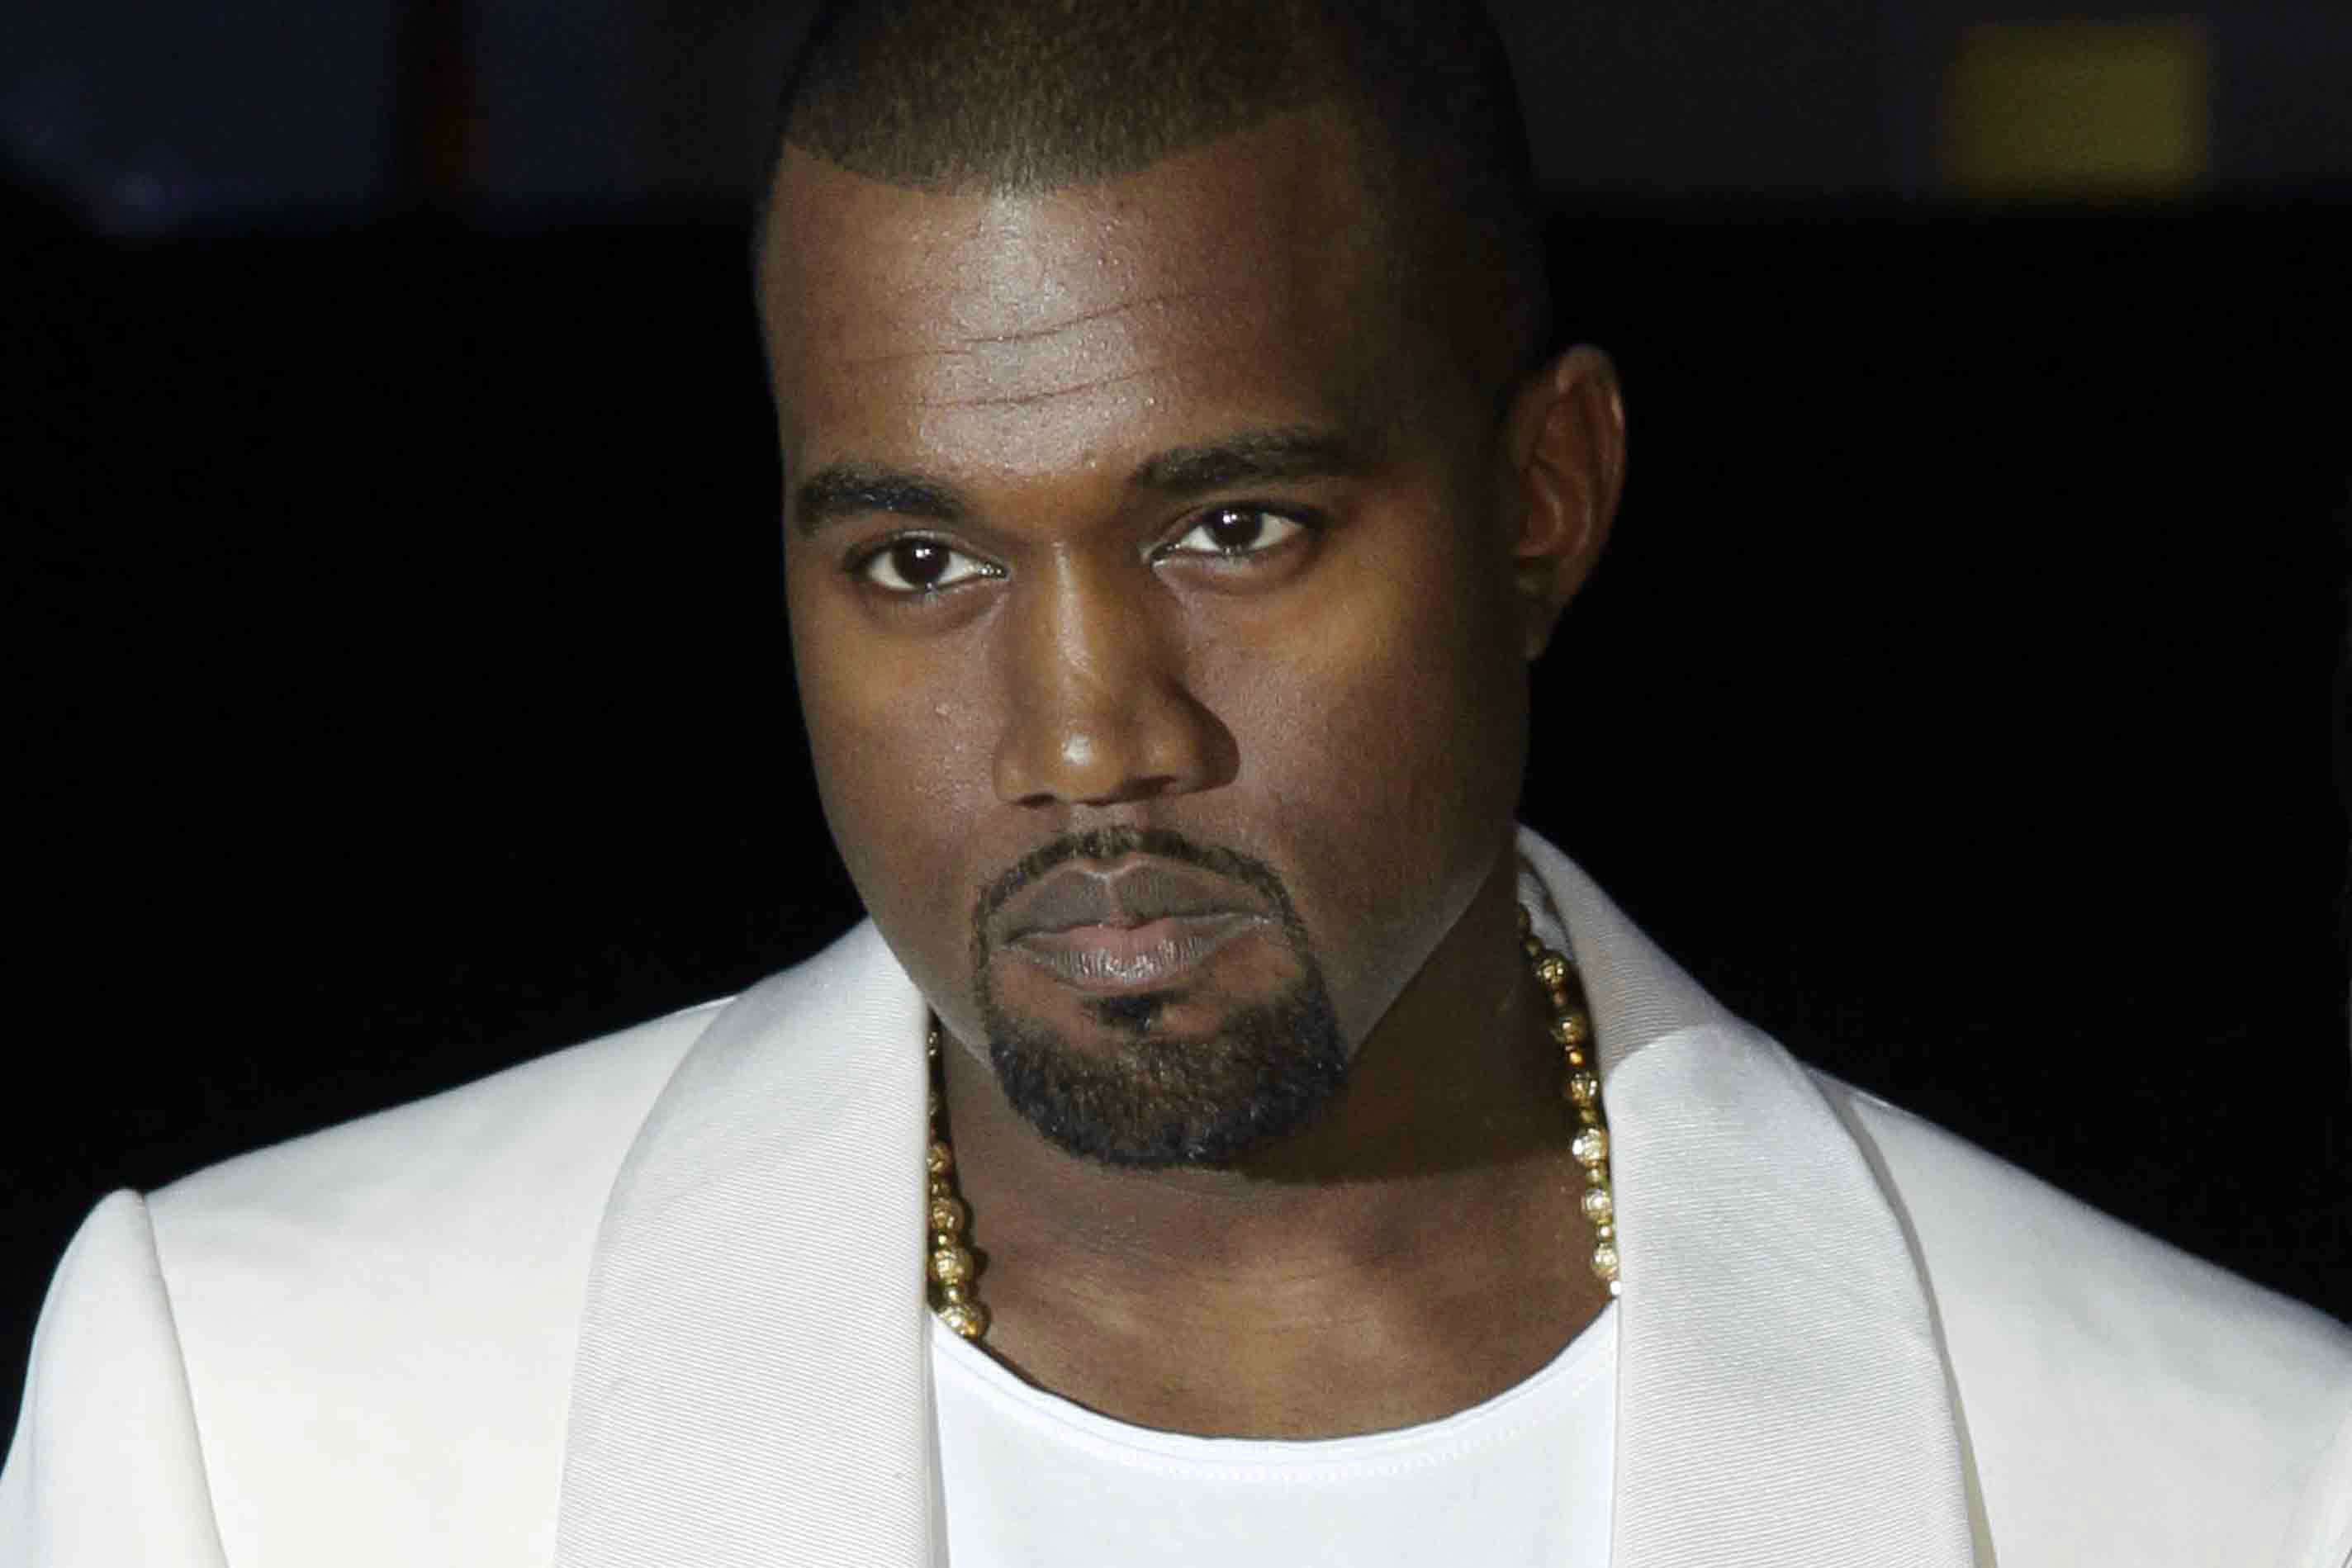 Kanye West Kanye West Makes Bizarre Demand Hindi Movie News Times Of India